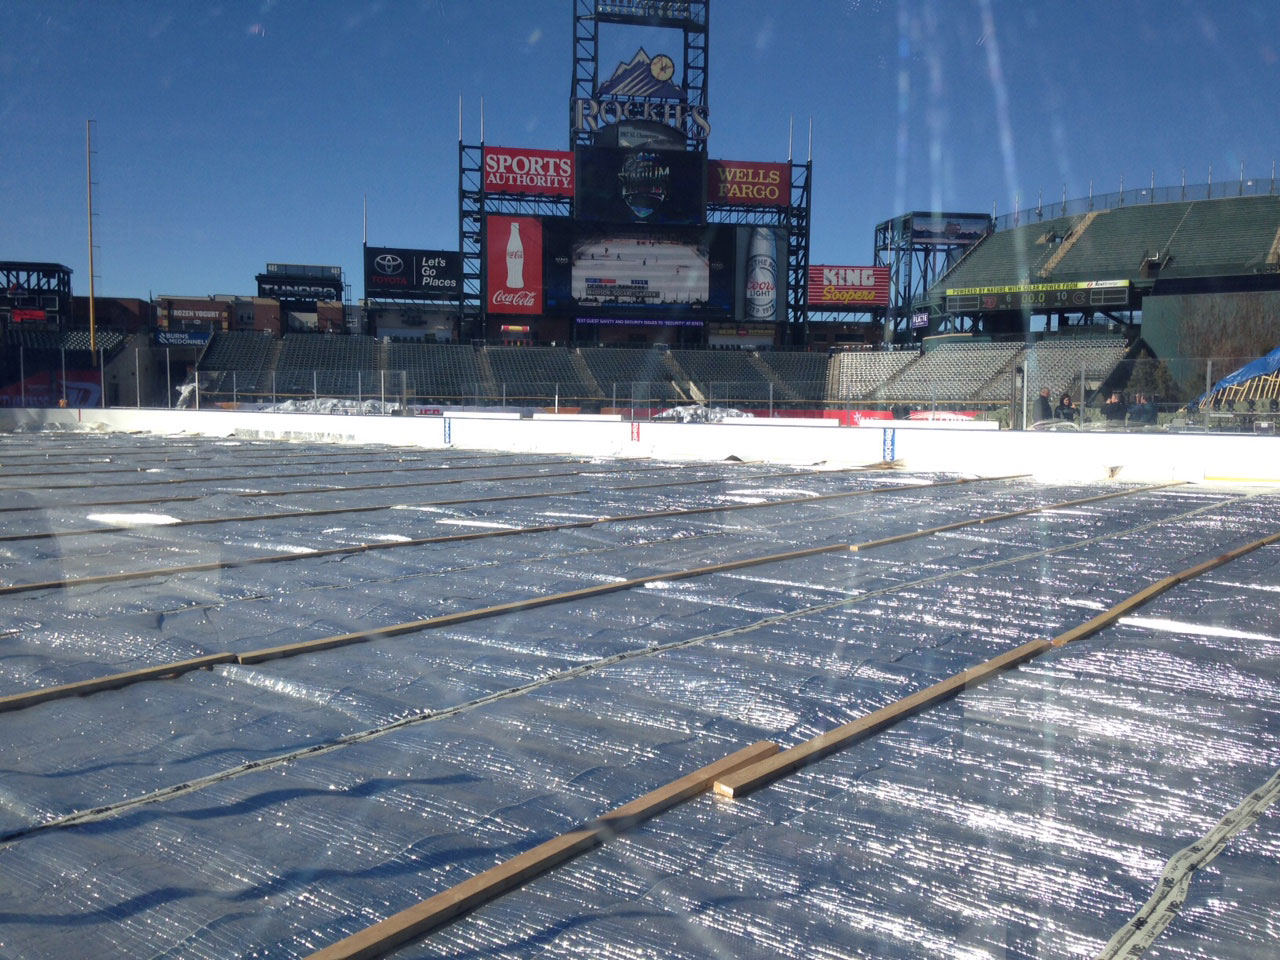 The covered ice at the rink in Coors Field (credit: CBS)